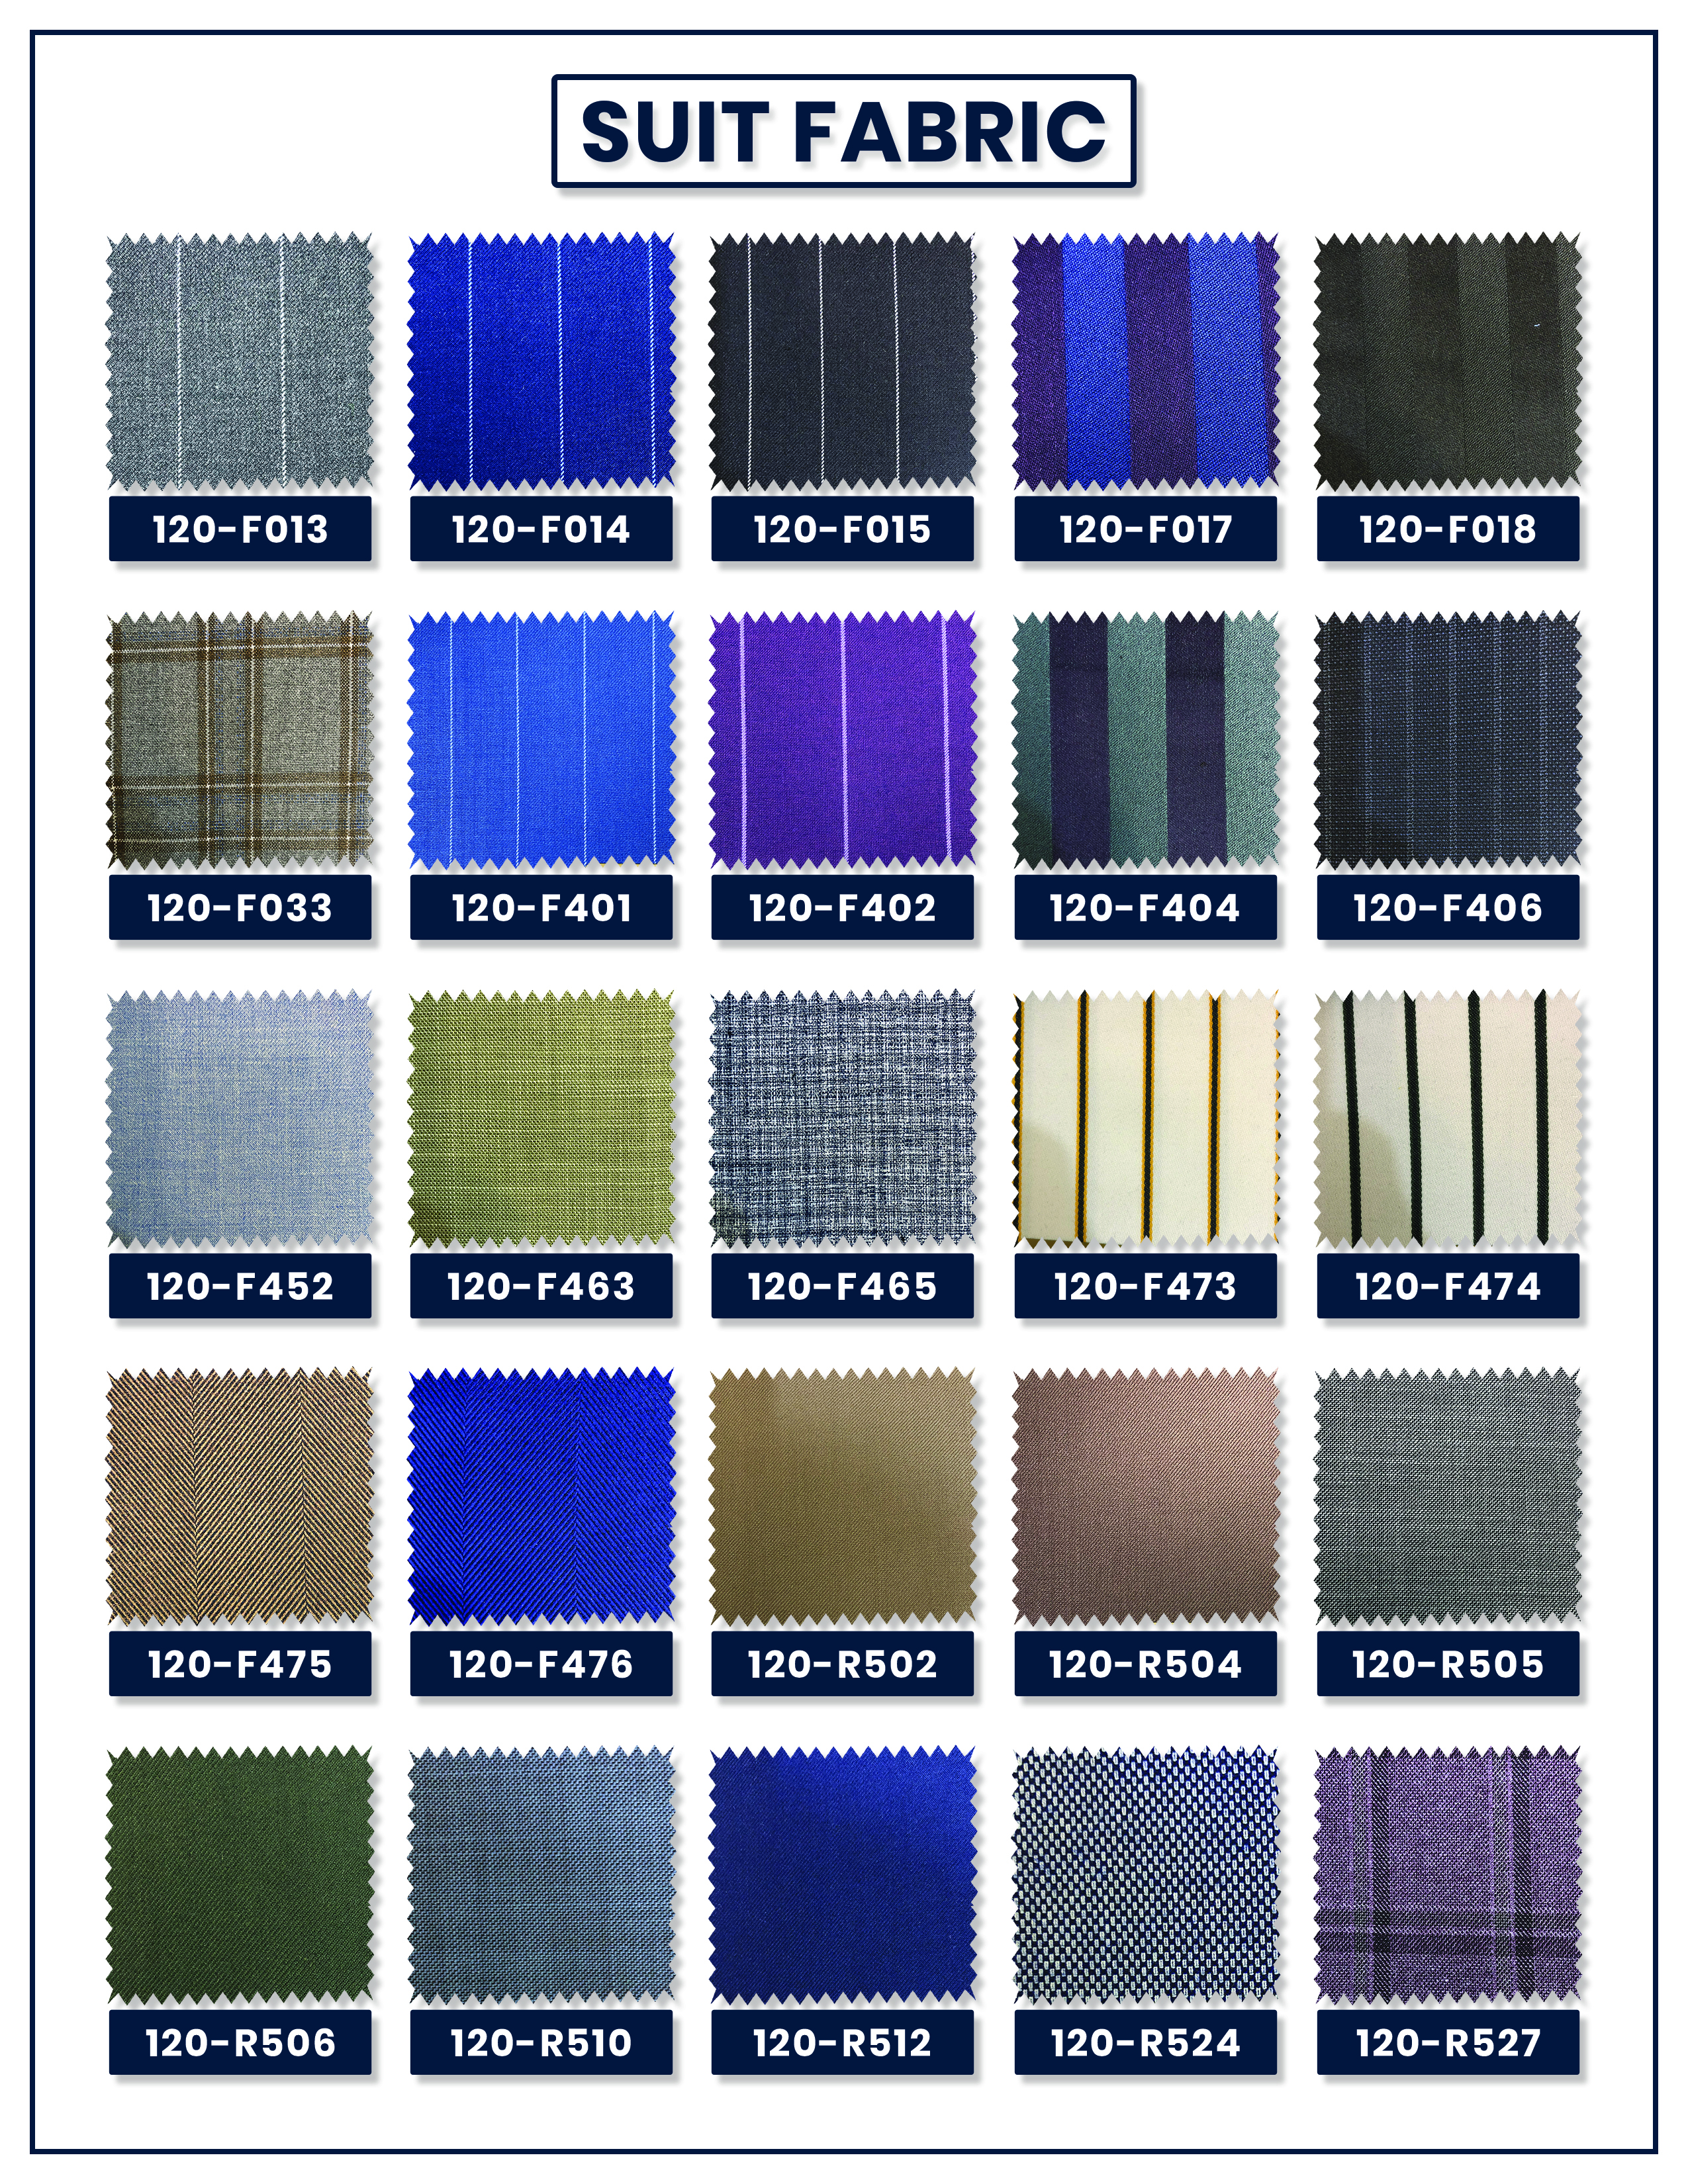 suit-fabric-page-1-cmyk-.jpg